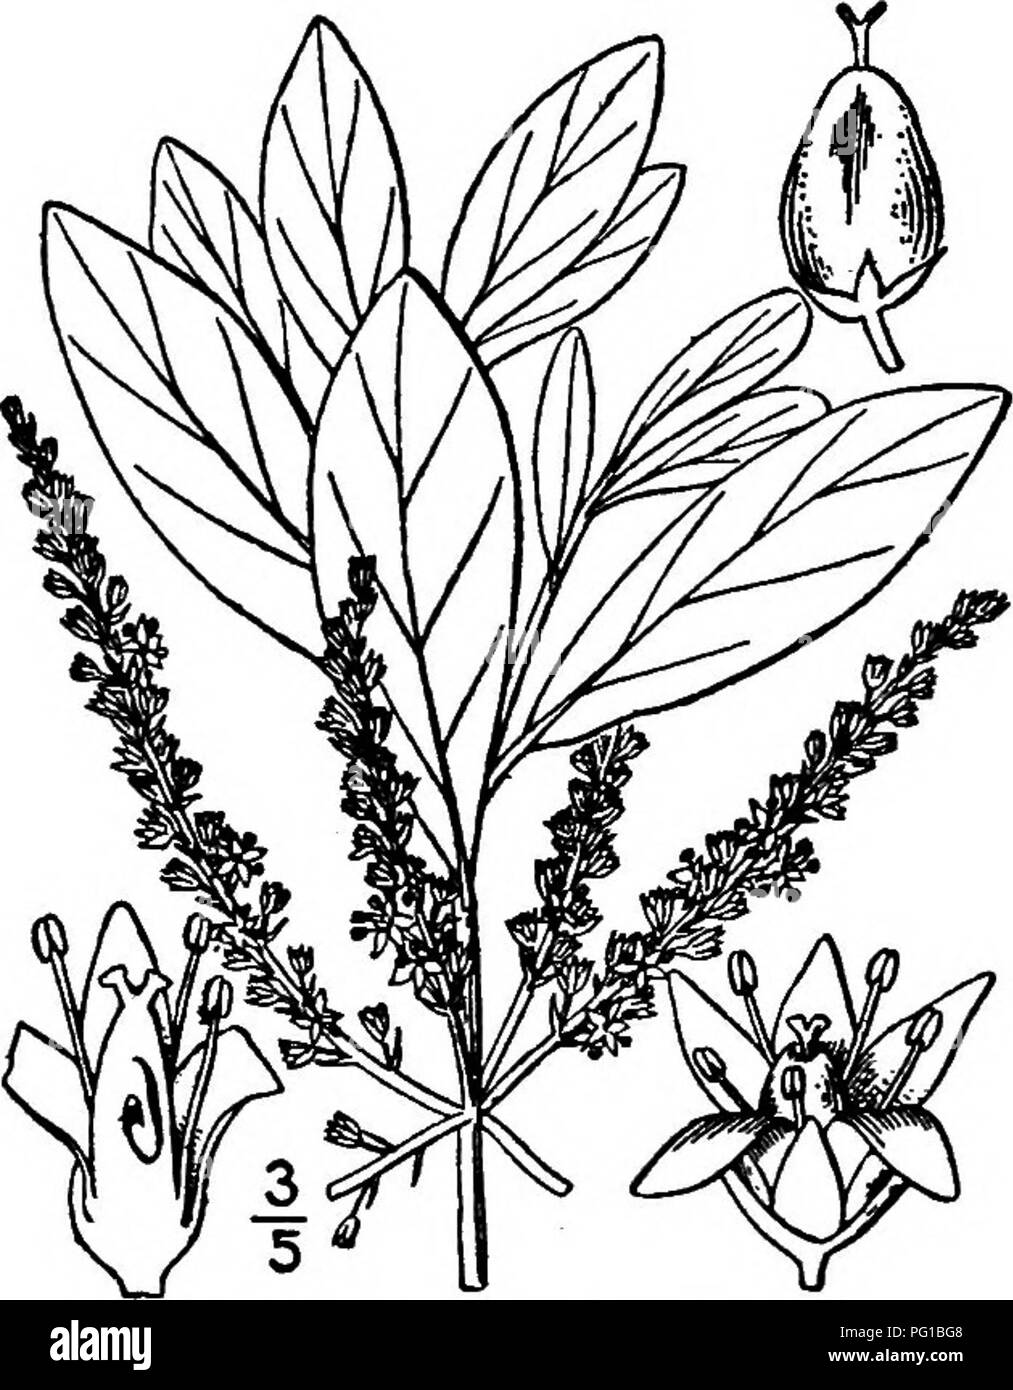 . North American trees : being descriptions and illustrations of the trees growing independently of cultivation in North America, north of Mexico and the West Indies . Trees. 6i8 Titi alternate entire-margined leaves are leathery, narrowly to rather broadly oblanceo- late to obovate or oblong, 2 to 10 cm. long, i to 3 cm. wide, rather strongly netted- veined, blunt or pointed, dark green and shining on the upper side, dull green and paler on the lower; their stalks are from 3 to 15 mm. long and they have no stipules. The small white or pinkish flowers are regular and perfect, borne in long nar - Stock Image